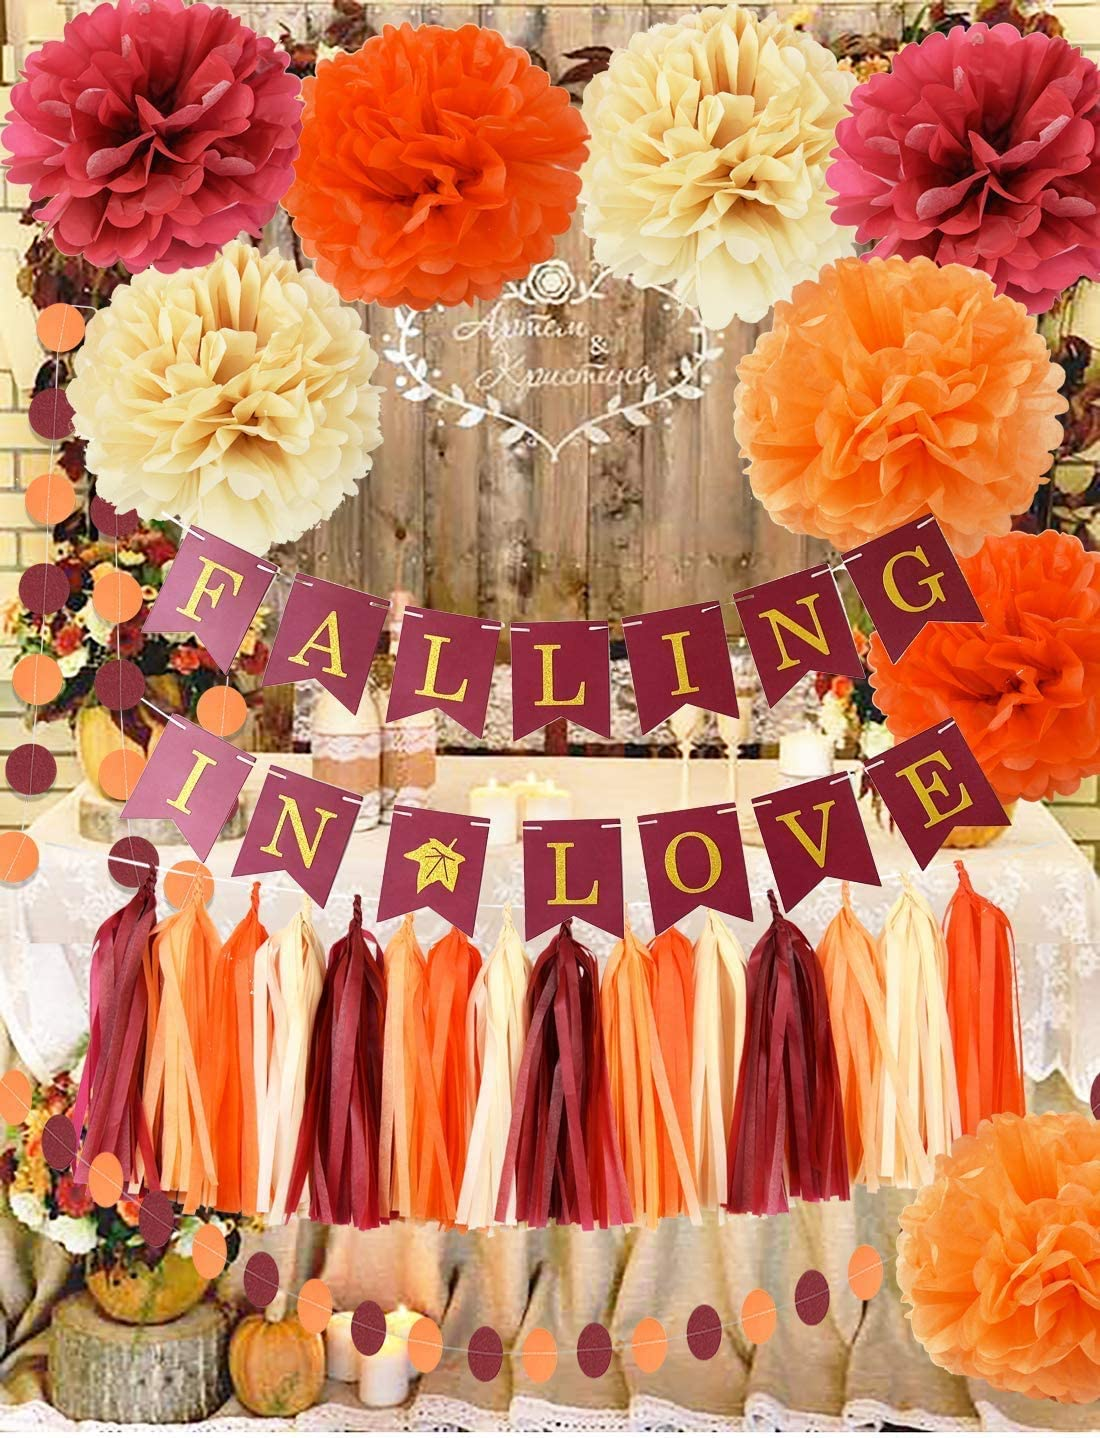 Fall Bridal Shower Decorations Wine Burgundy Champagne Orange /Fall In Love Banner Wedding Decorations Burgundy Orange Maroon Burgundy Wedding/Fall Themed Wedding/Wedding Anniversary Decorations